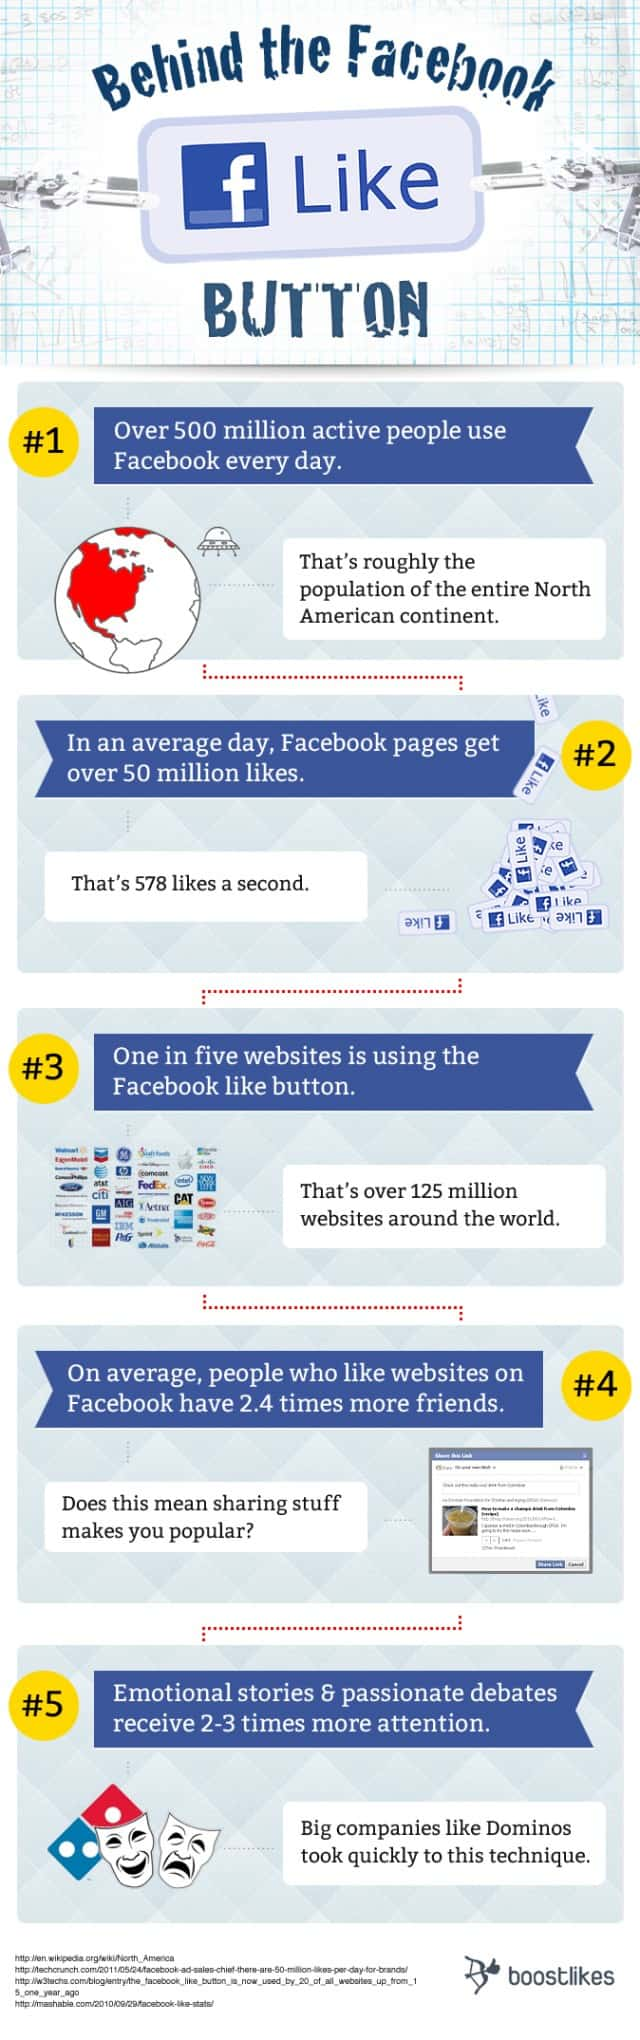 Behind the Facebook Like Button [infographic]